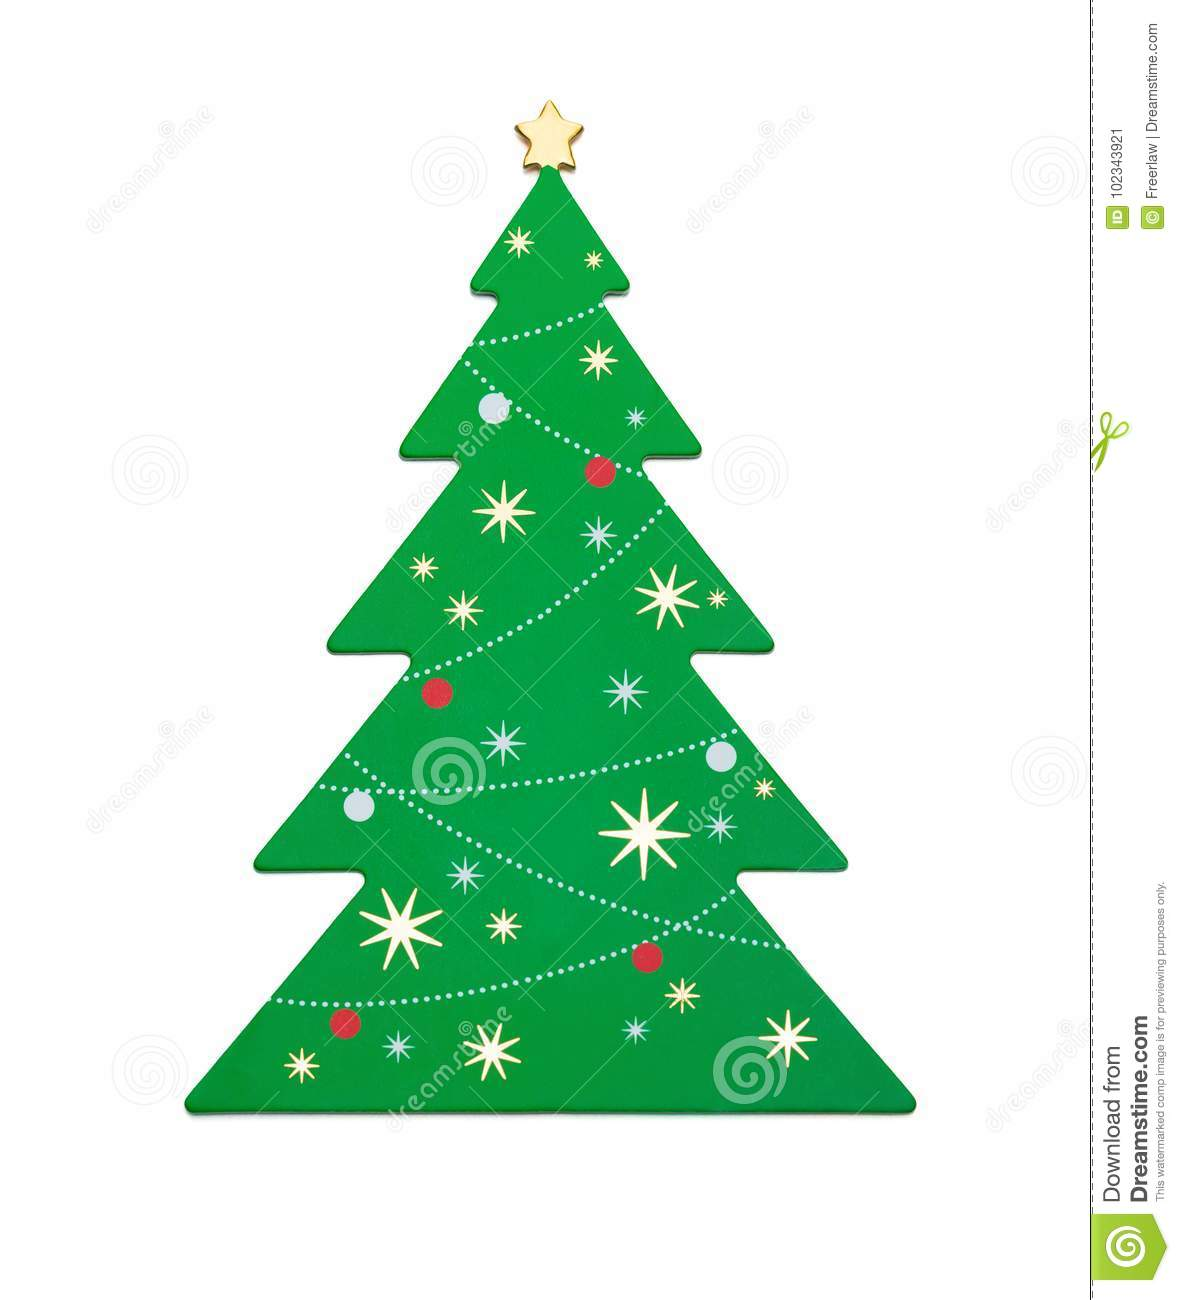 Flat green christmas tree on white background with clipping path